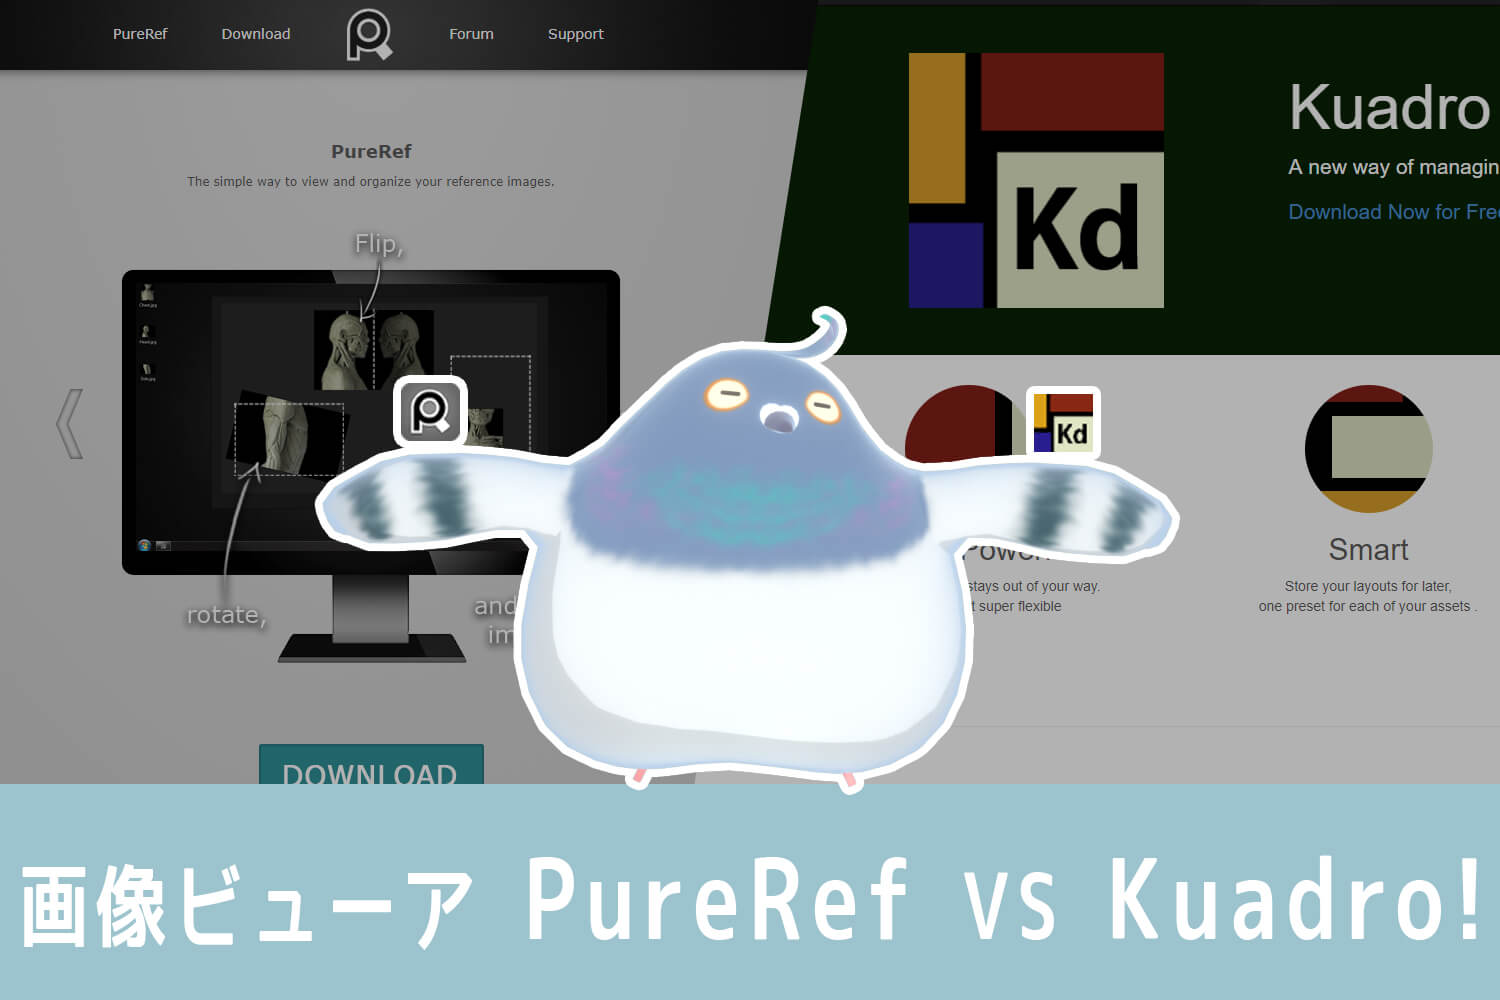 画像ビューア PureRef VS Kuadro!